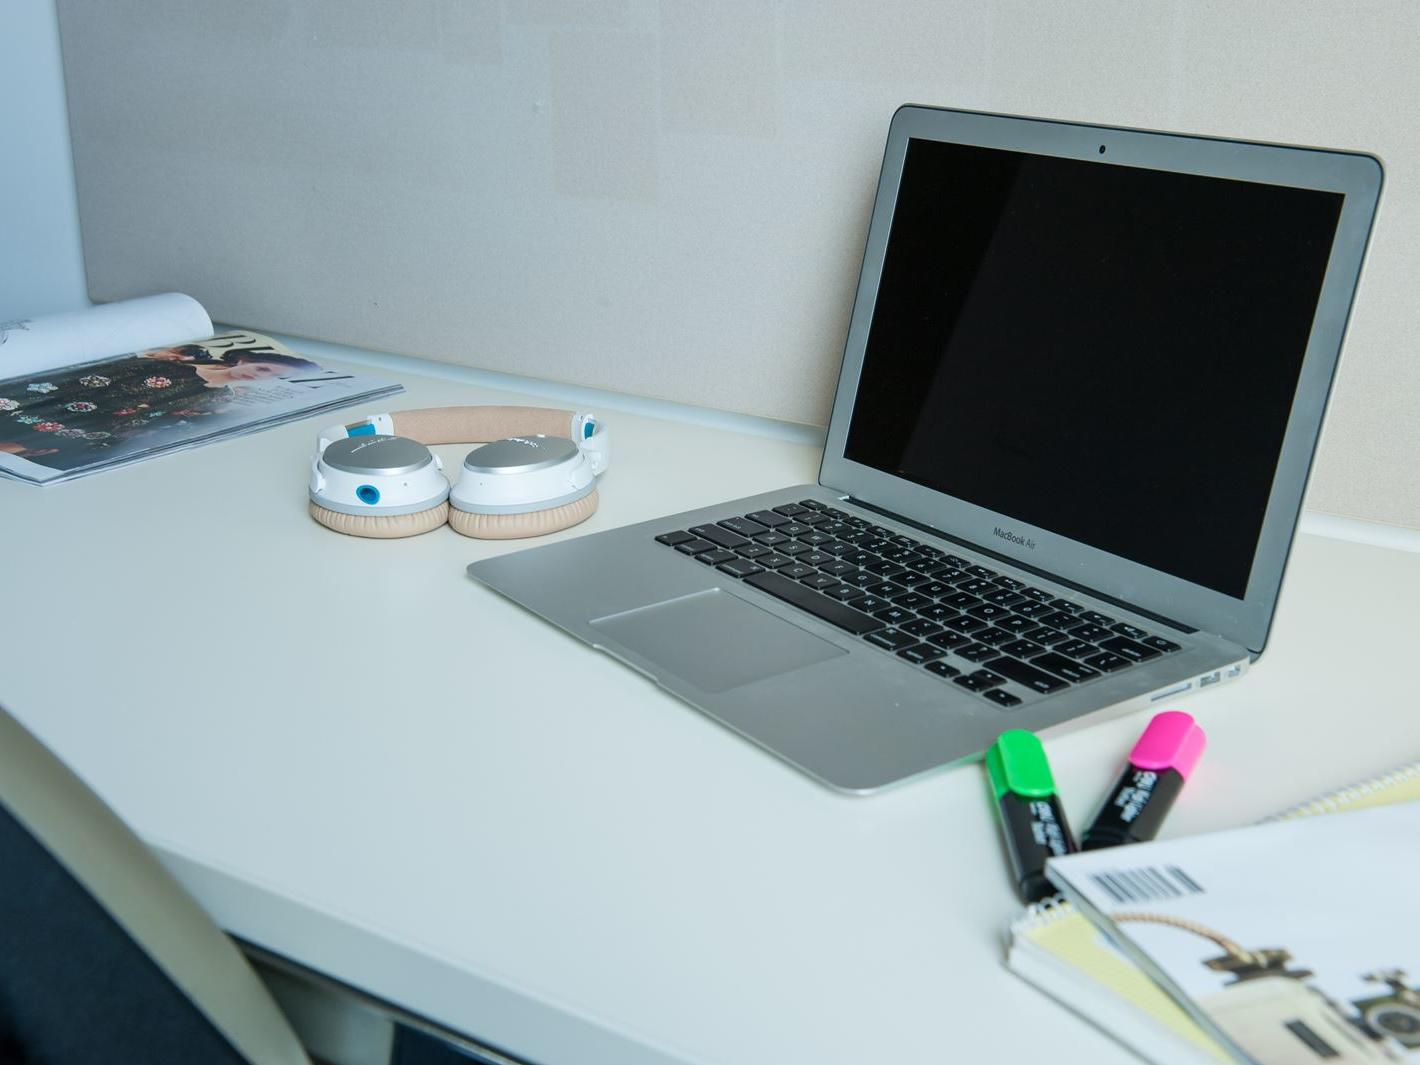 Study desk with laptop